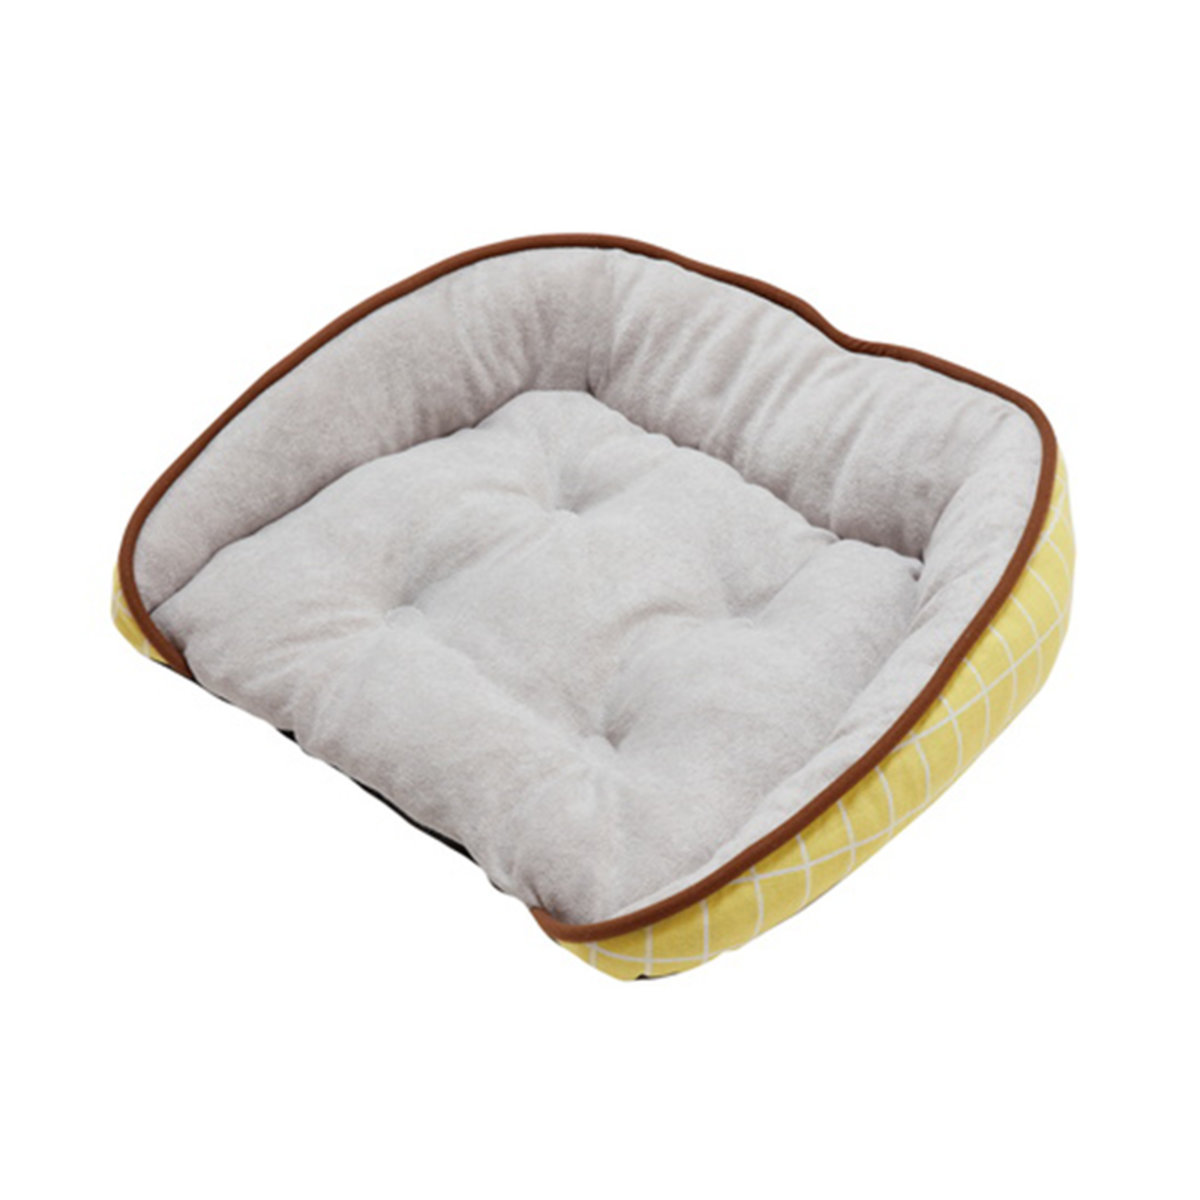 Cuna Square Pet Bed M (Yellow)  #H39